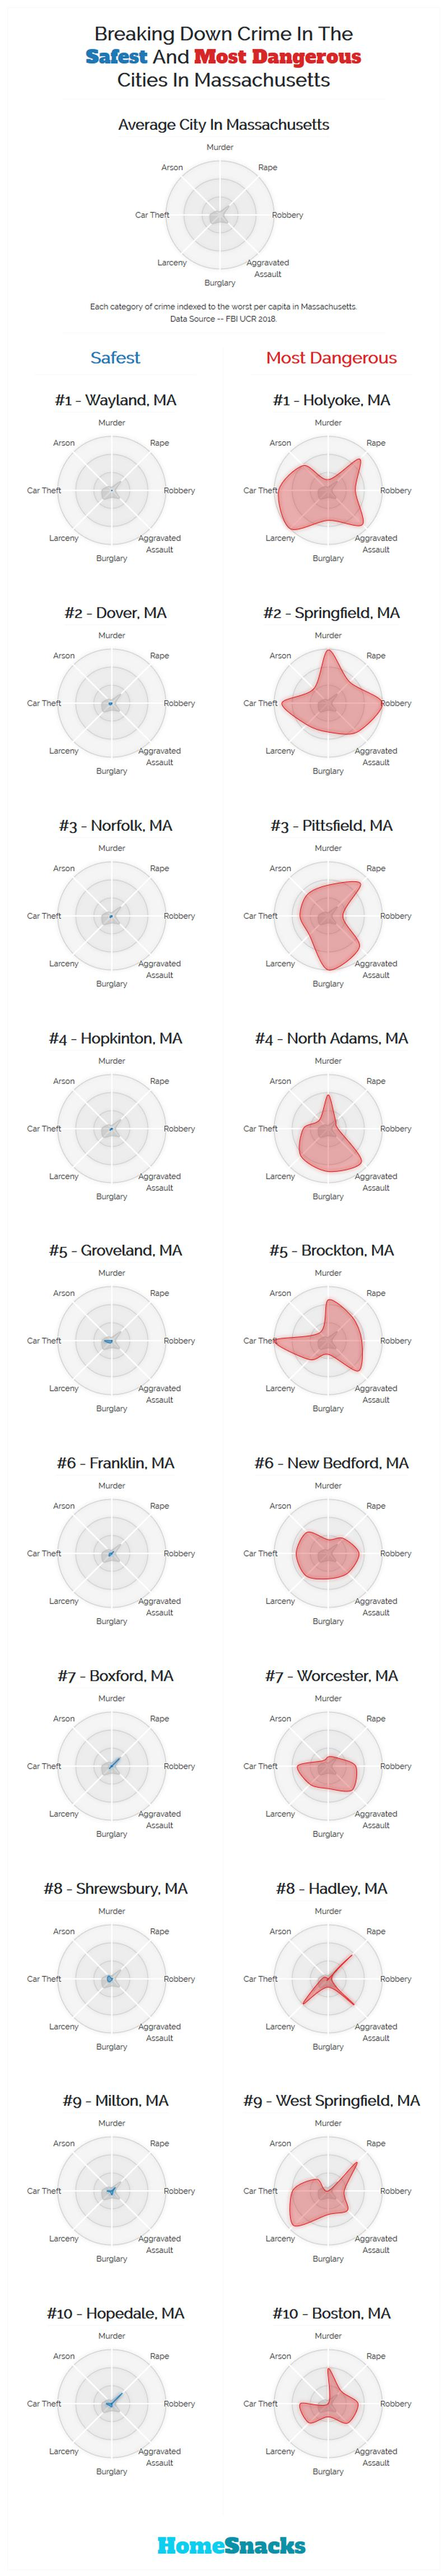 Safest Cities in Massachusetts Breakdown